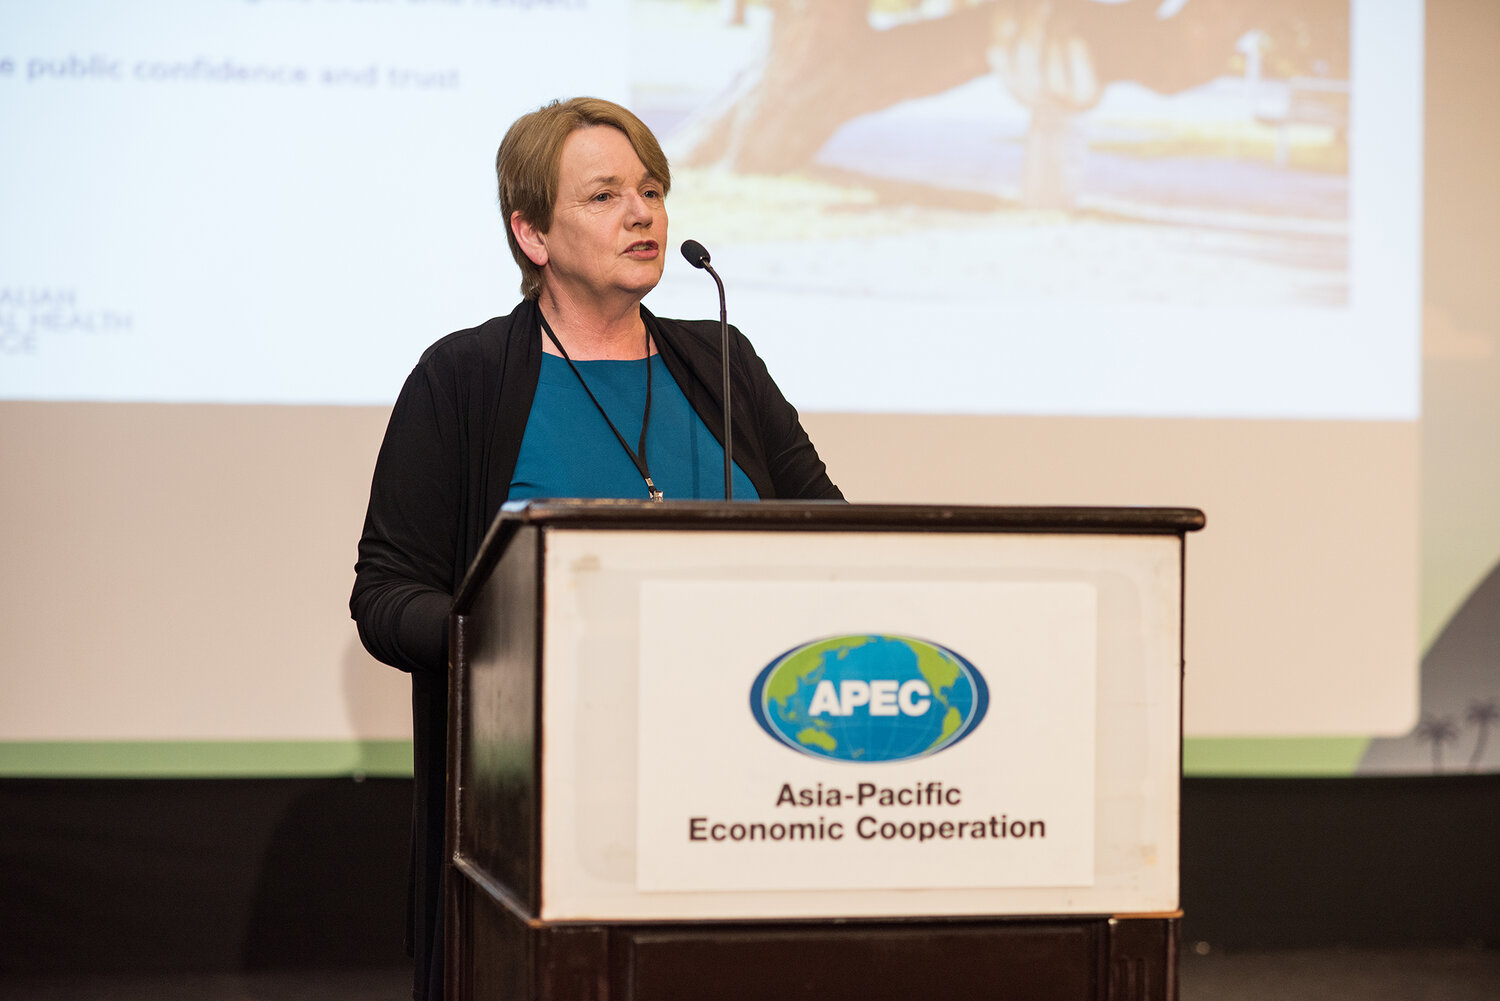 Alison Verhoeven, Chief Executive of the Australian Healthcare and Hospitals Association, presenting the Plenary Session at the 2019 APEC Forum